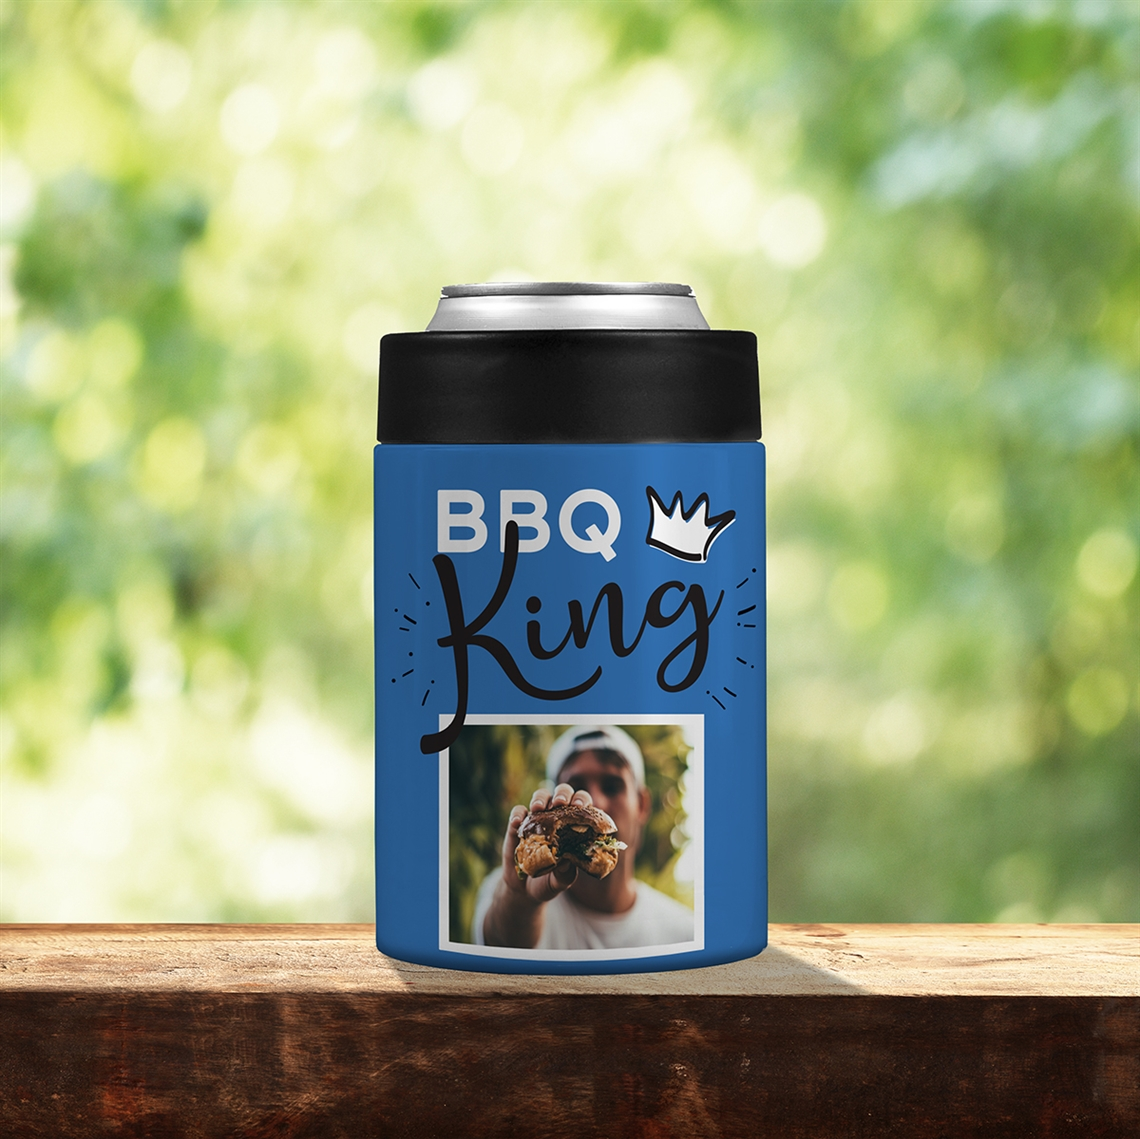 Picture of BBQ King Blue Stainless Steel Koozie